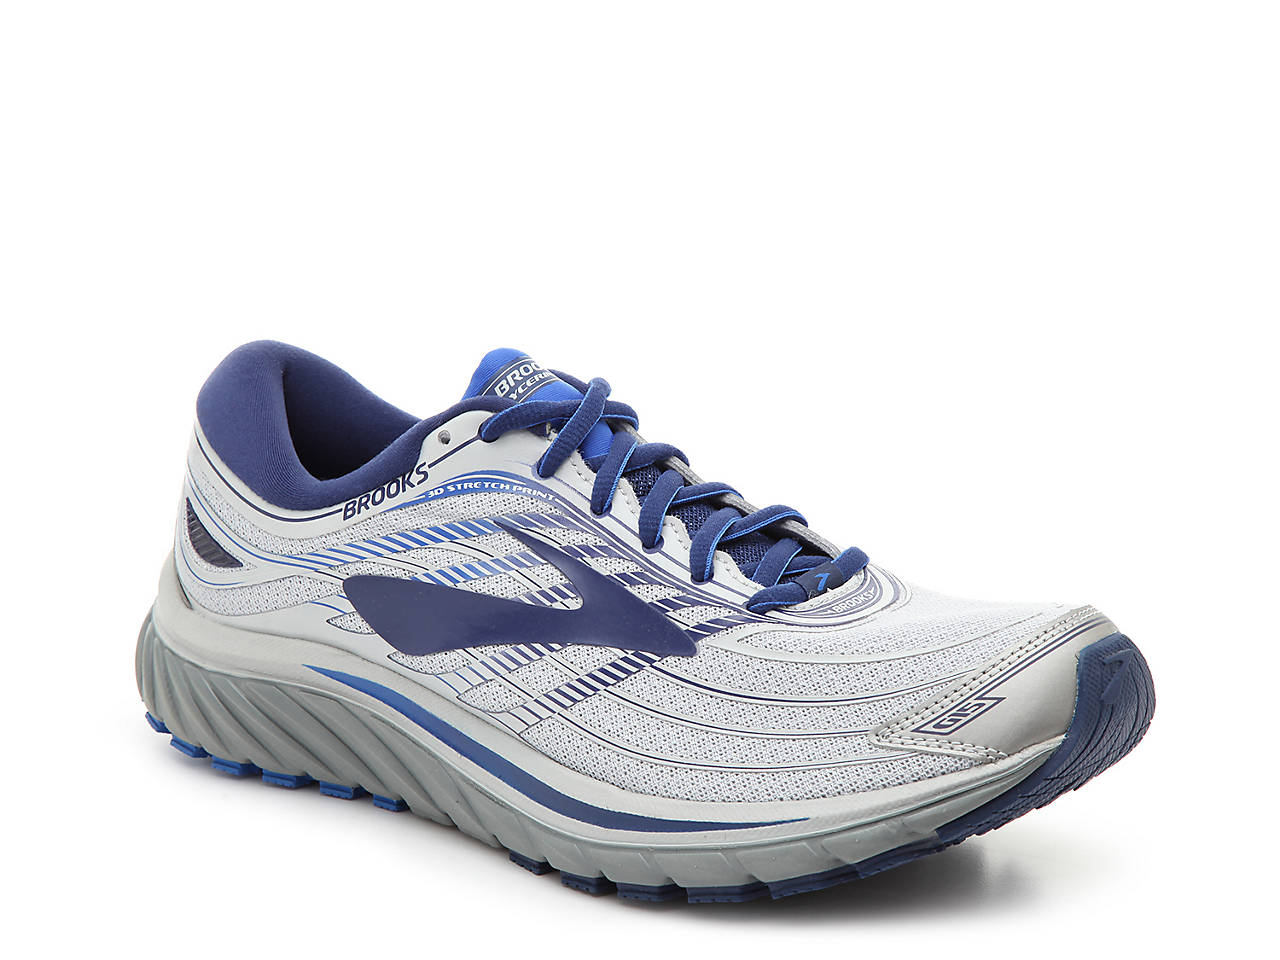 e8ab92afd084a Brooks Glycerin 15 Performance Running Shoe - Men s Men s Shoes